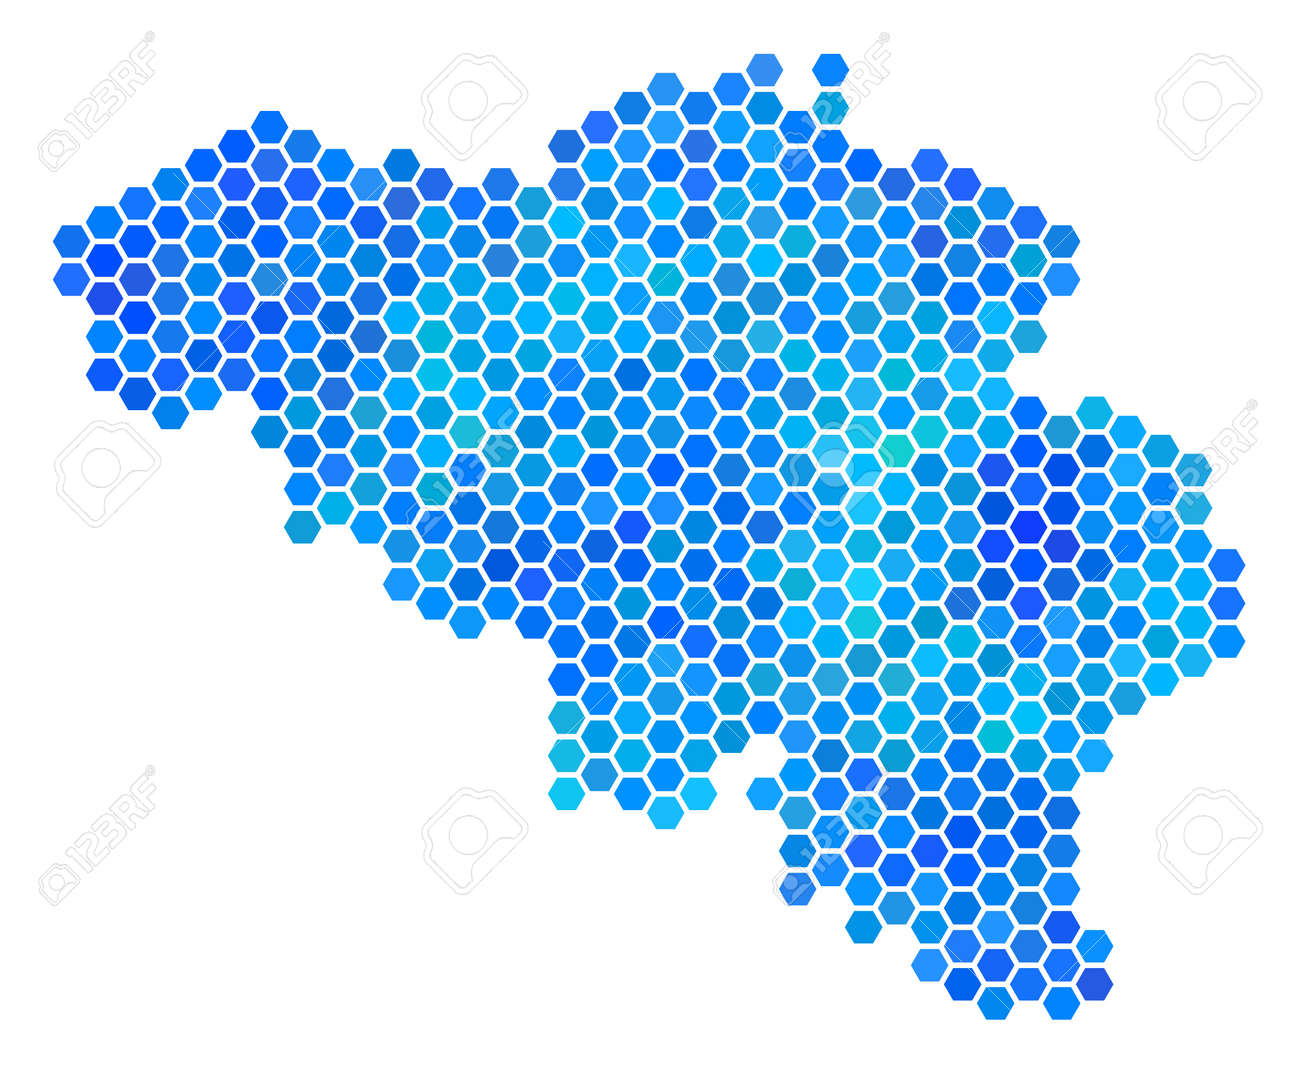 hexagon blue belgium map vector geographic map in blue color tints on a white background